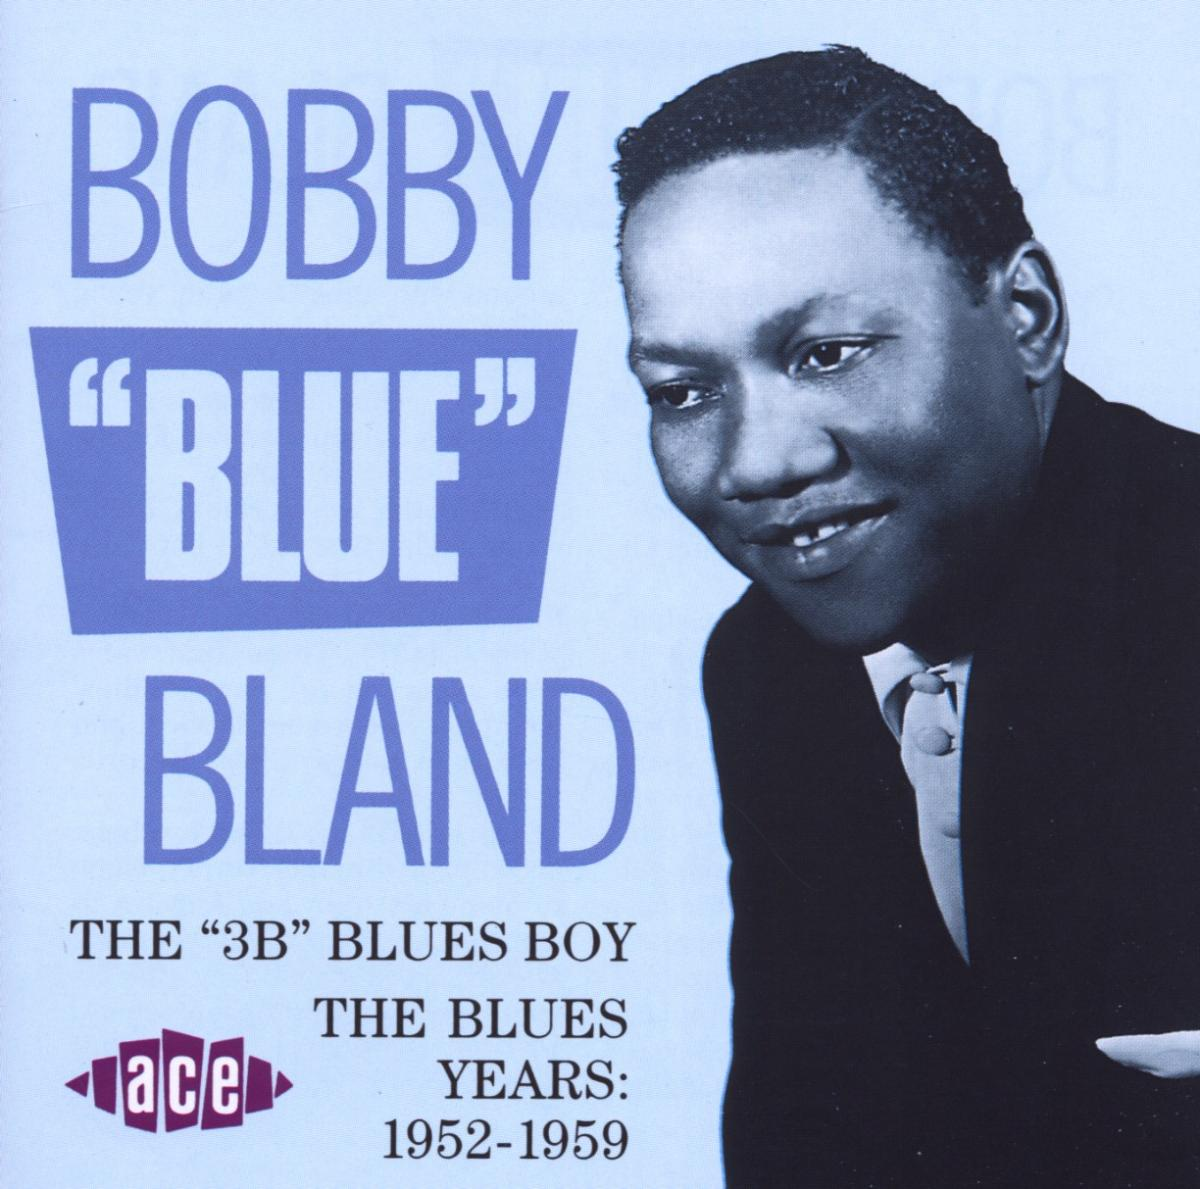 3BS Blues Boy - Bobby Blue Bland - Musik - ACE RECORDS - 0029667130226 - December 31, 1993